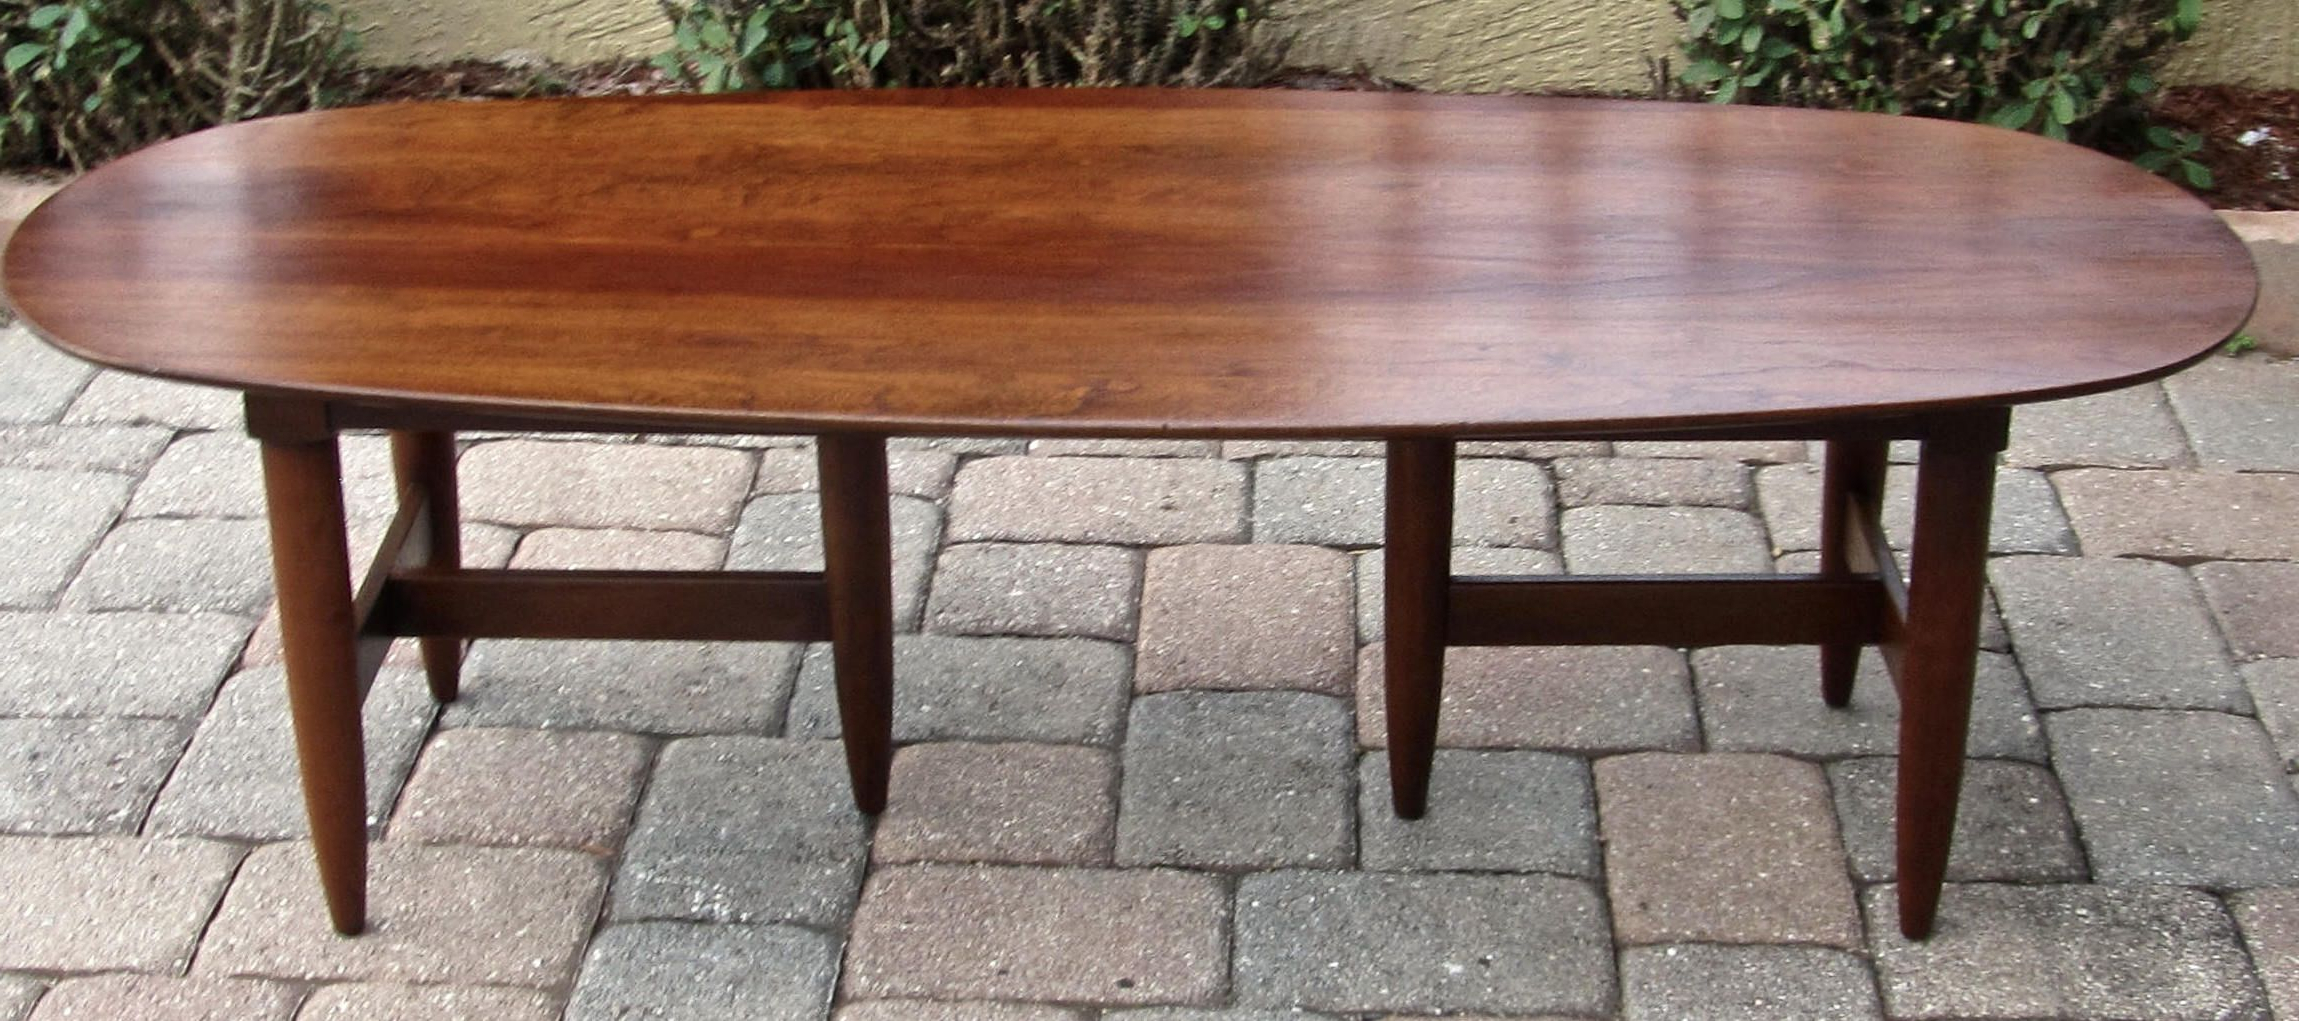 Stuff Intended For Most Recently Released Winslet Cherry Finish Wood Oval Coffee Tables With Casters (View 7 of 20)